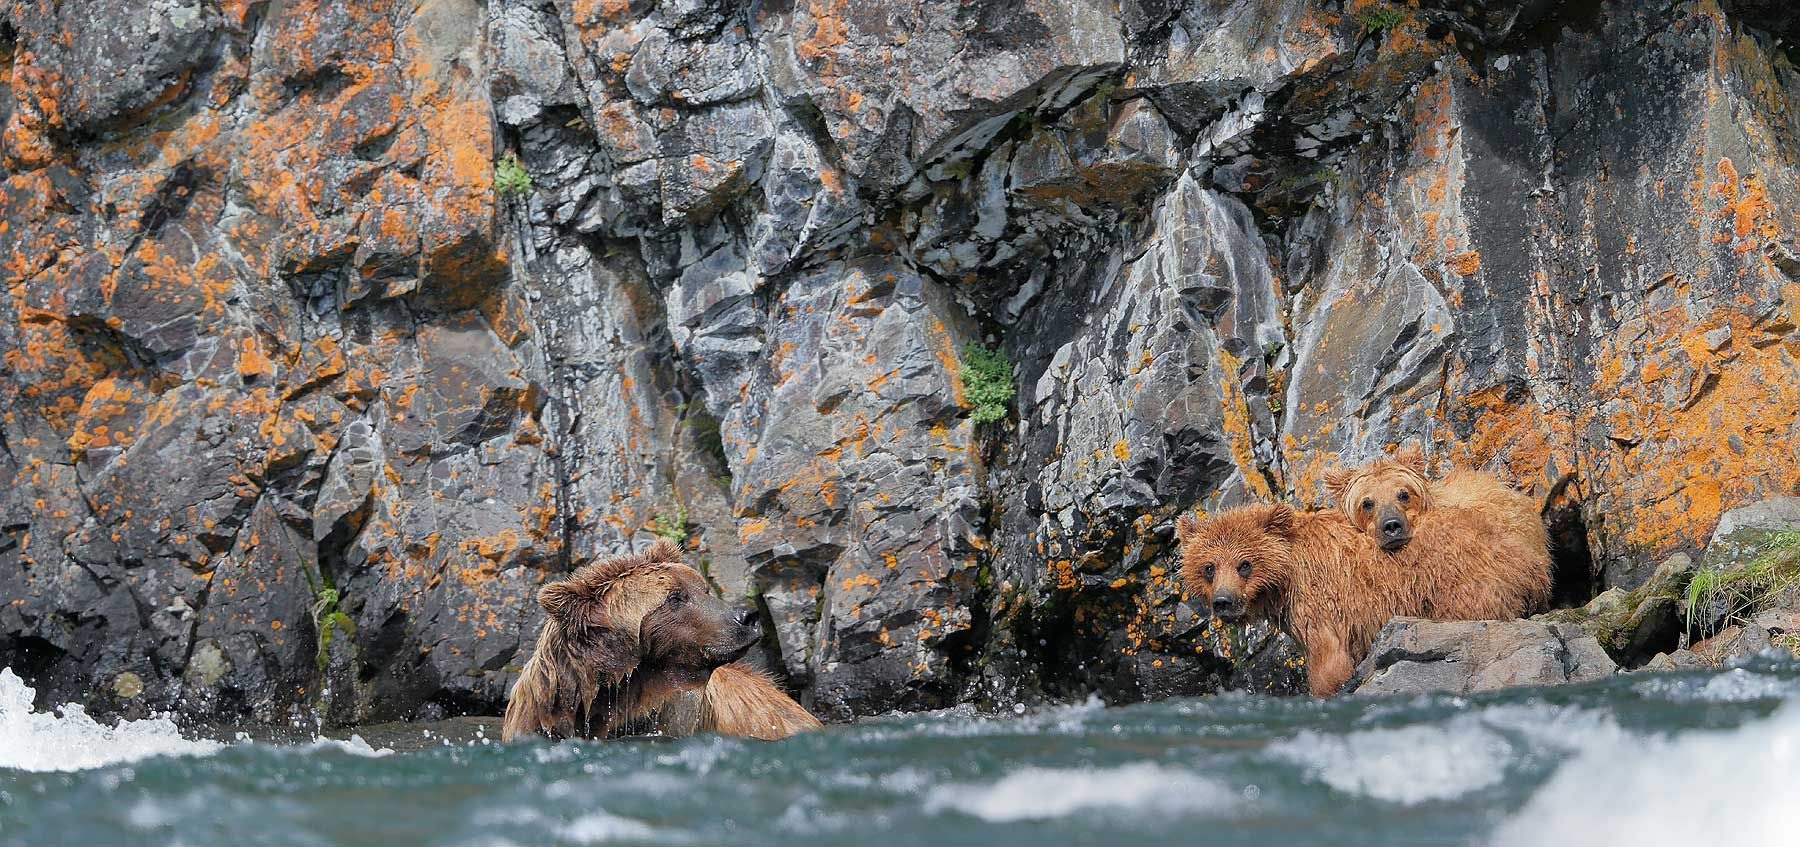 Coastal-brown-bear-sow-and-cubs-fishing-near-rock.jpg